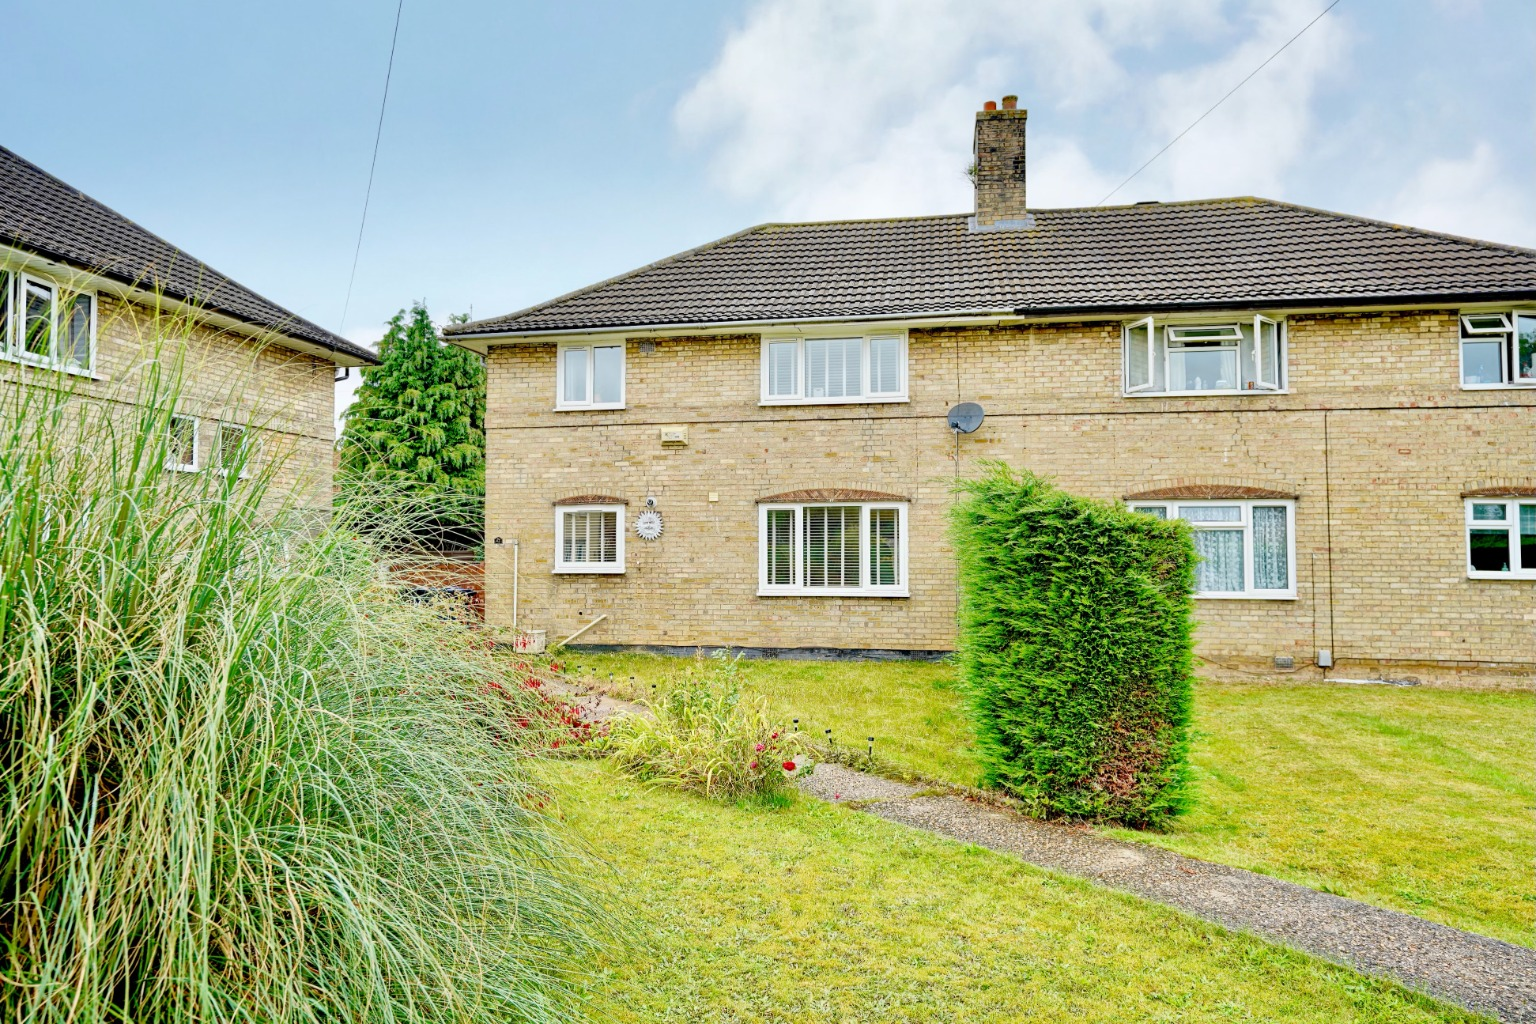 4 bed semi-detached house for sale in Ferrars Avenue, St. Neots - Property Image 1